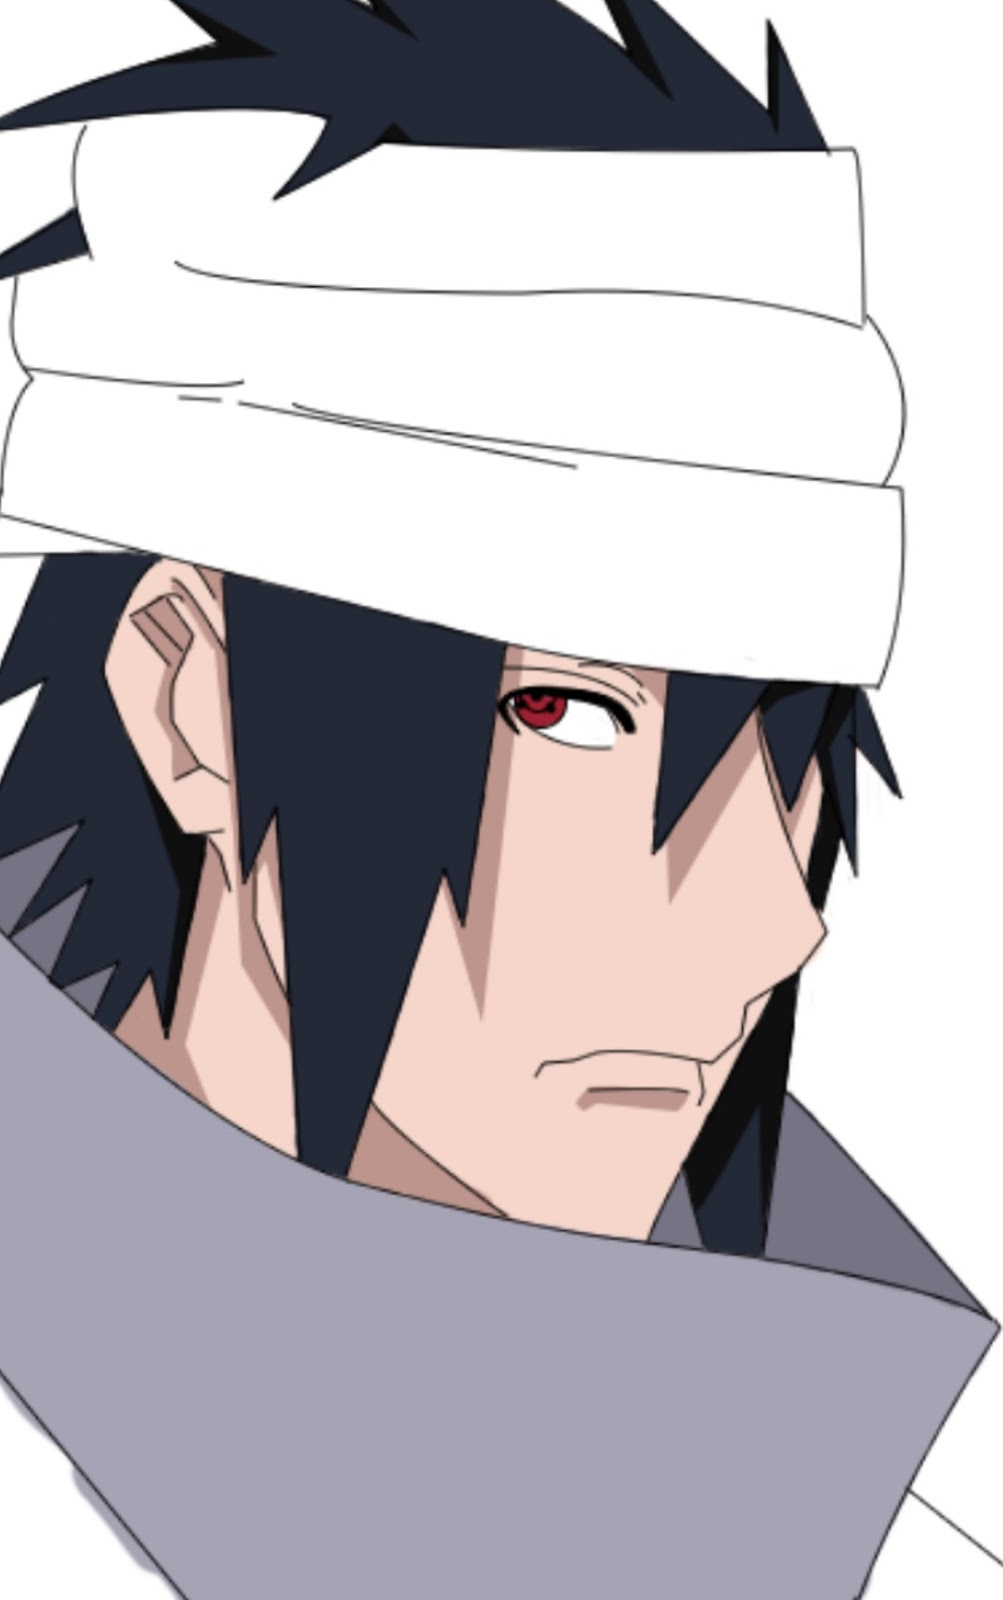 20. Download wallpaper uchiha sasuke vektor untuk android dan whatsApp chat